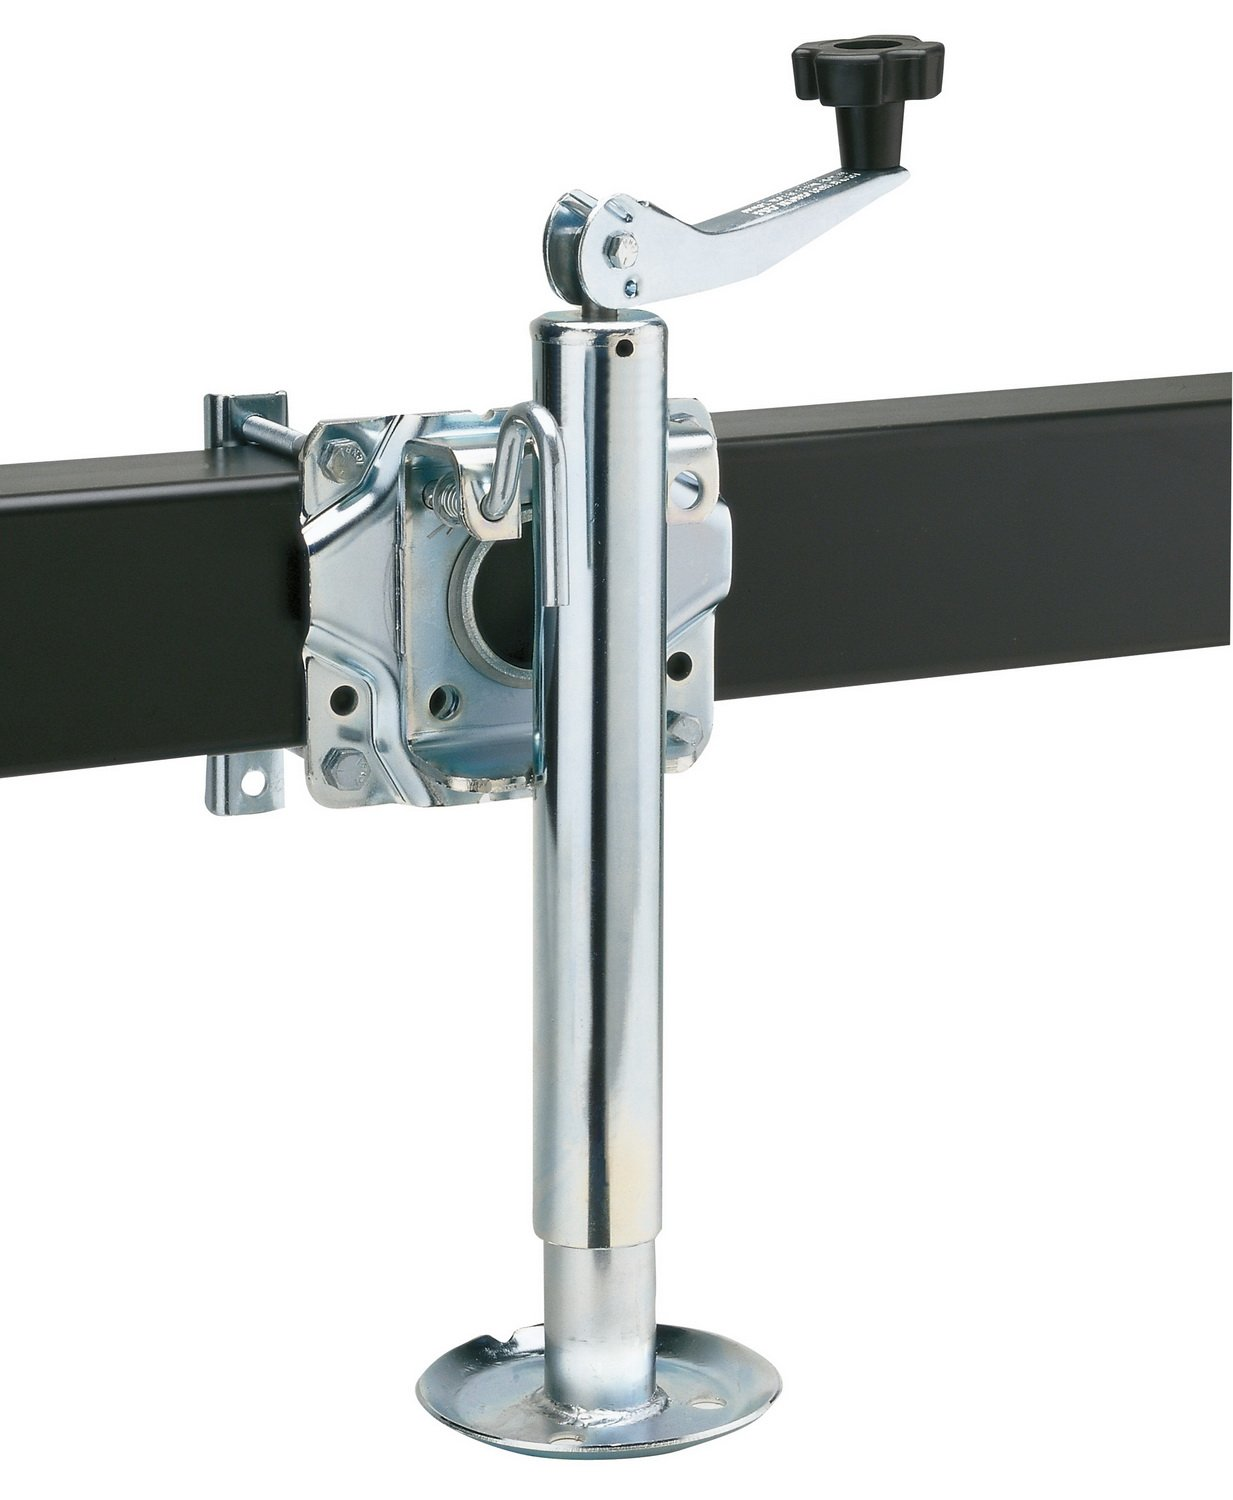 Reese Towpower 74413 Trailer Swivel Mount Jack